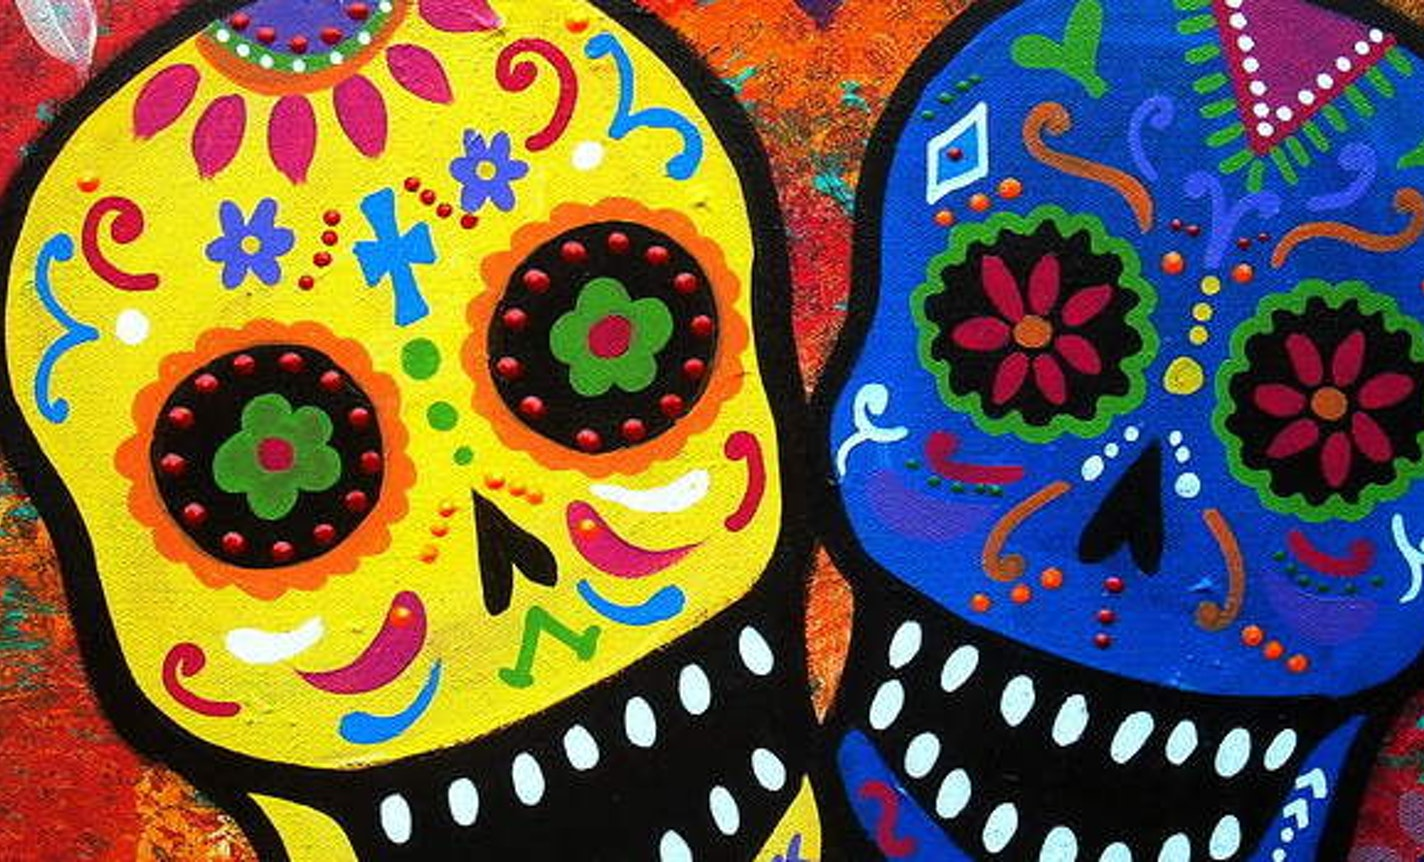 Día de Muertos (Day of the Dead Celebration)